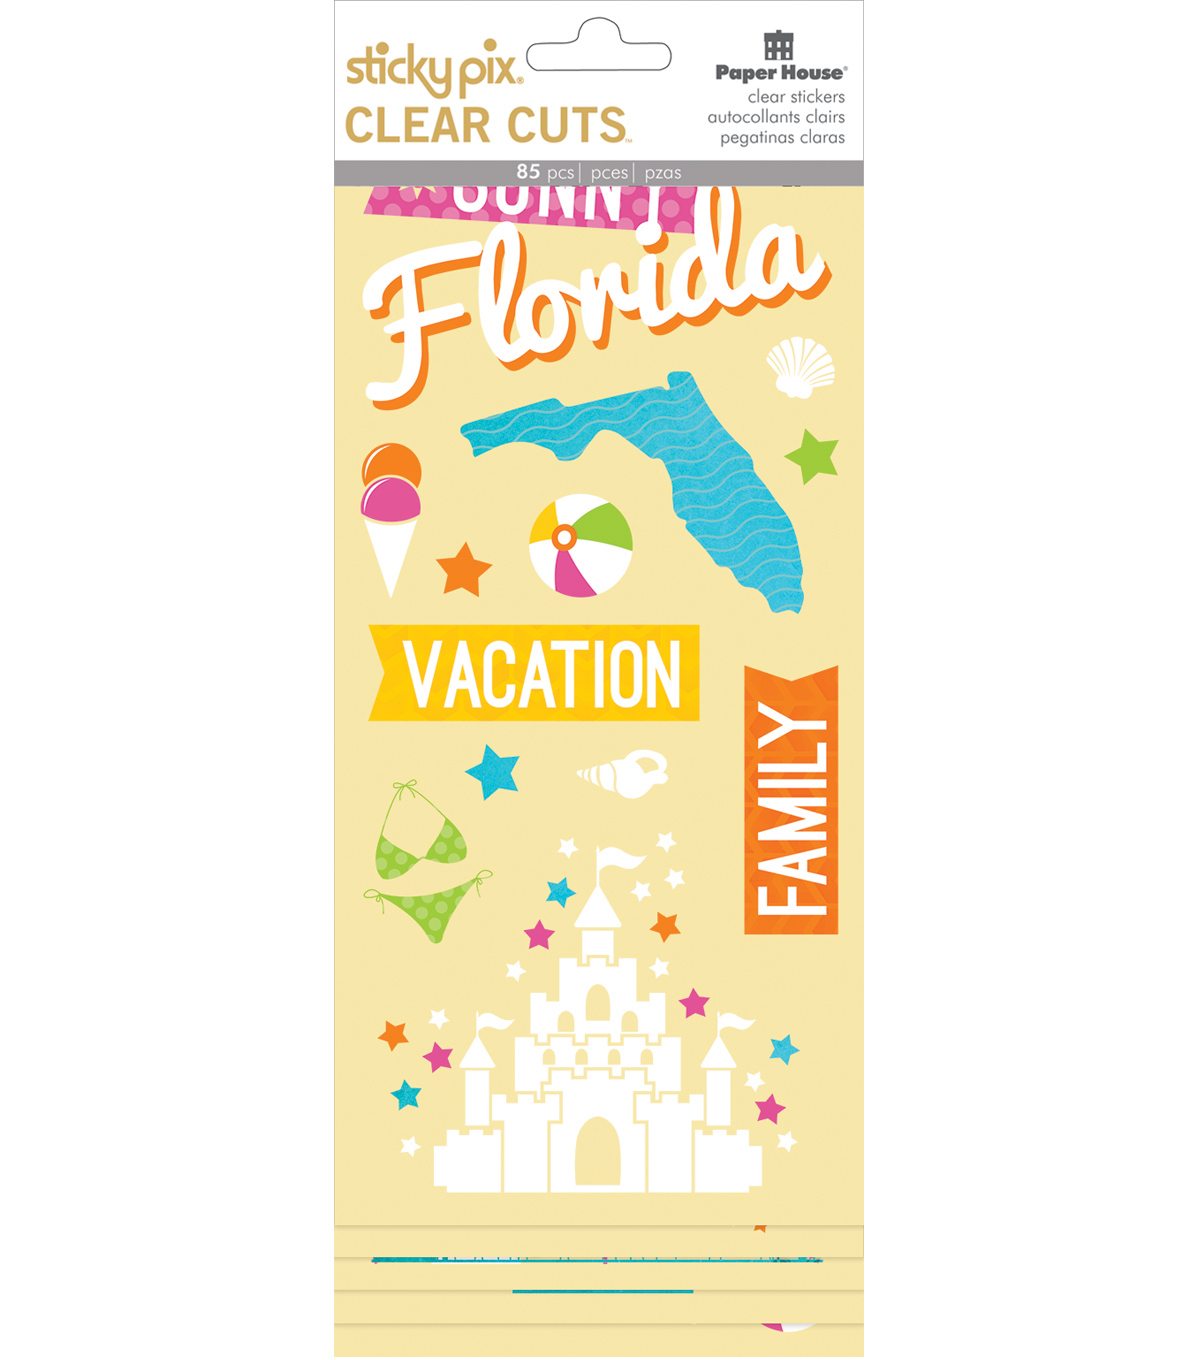 Paper House Sticky Pix Clear Cuts Pack of 85 Stickers-Florida